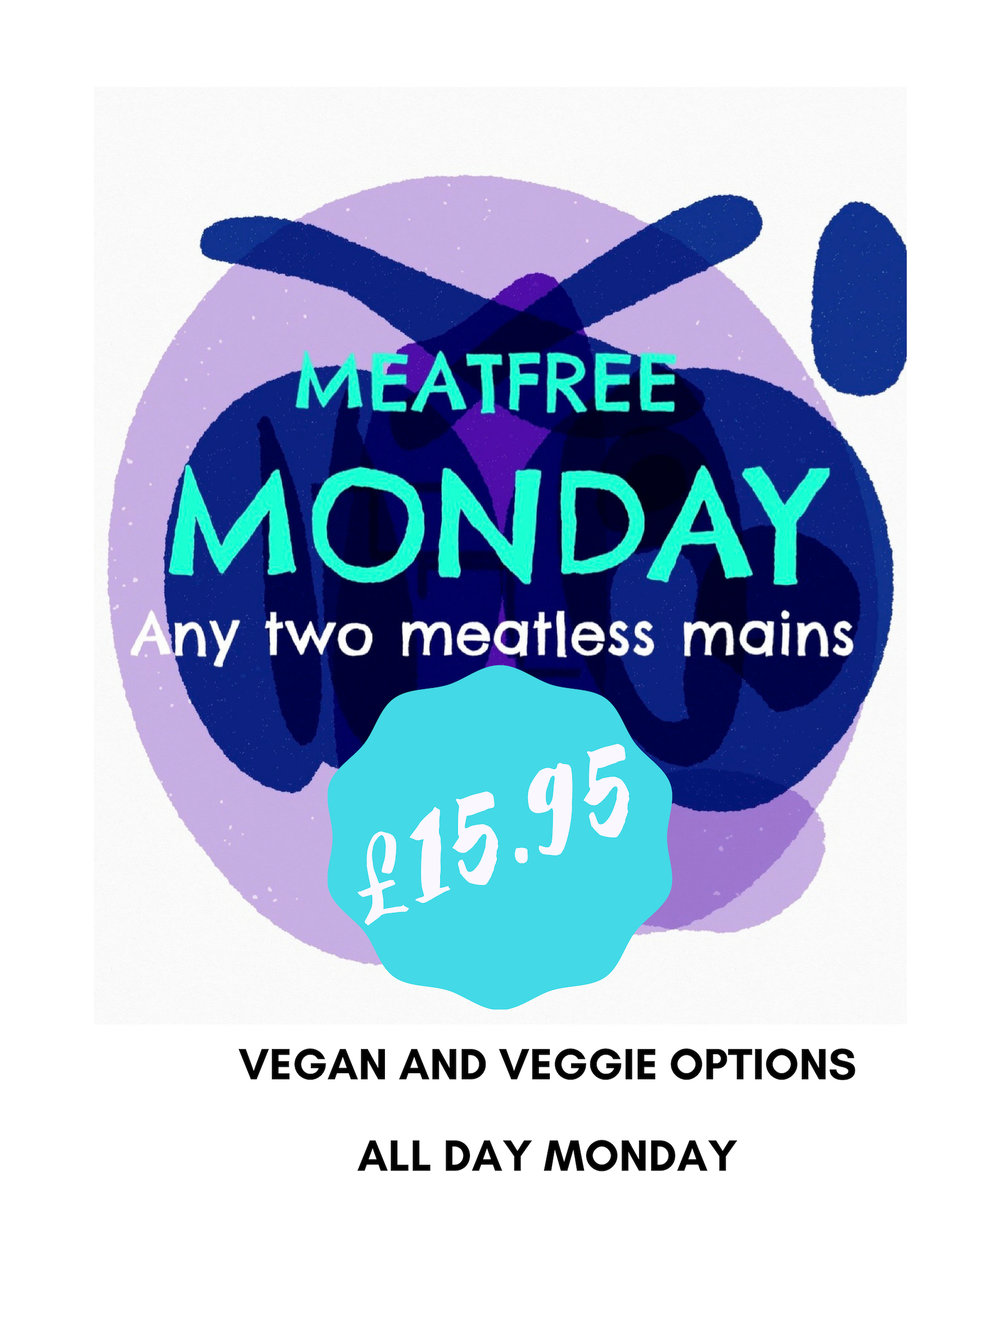 Meat free Monday offer valid until Sept 30th 2019